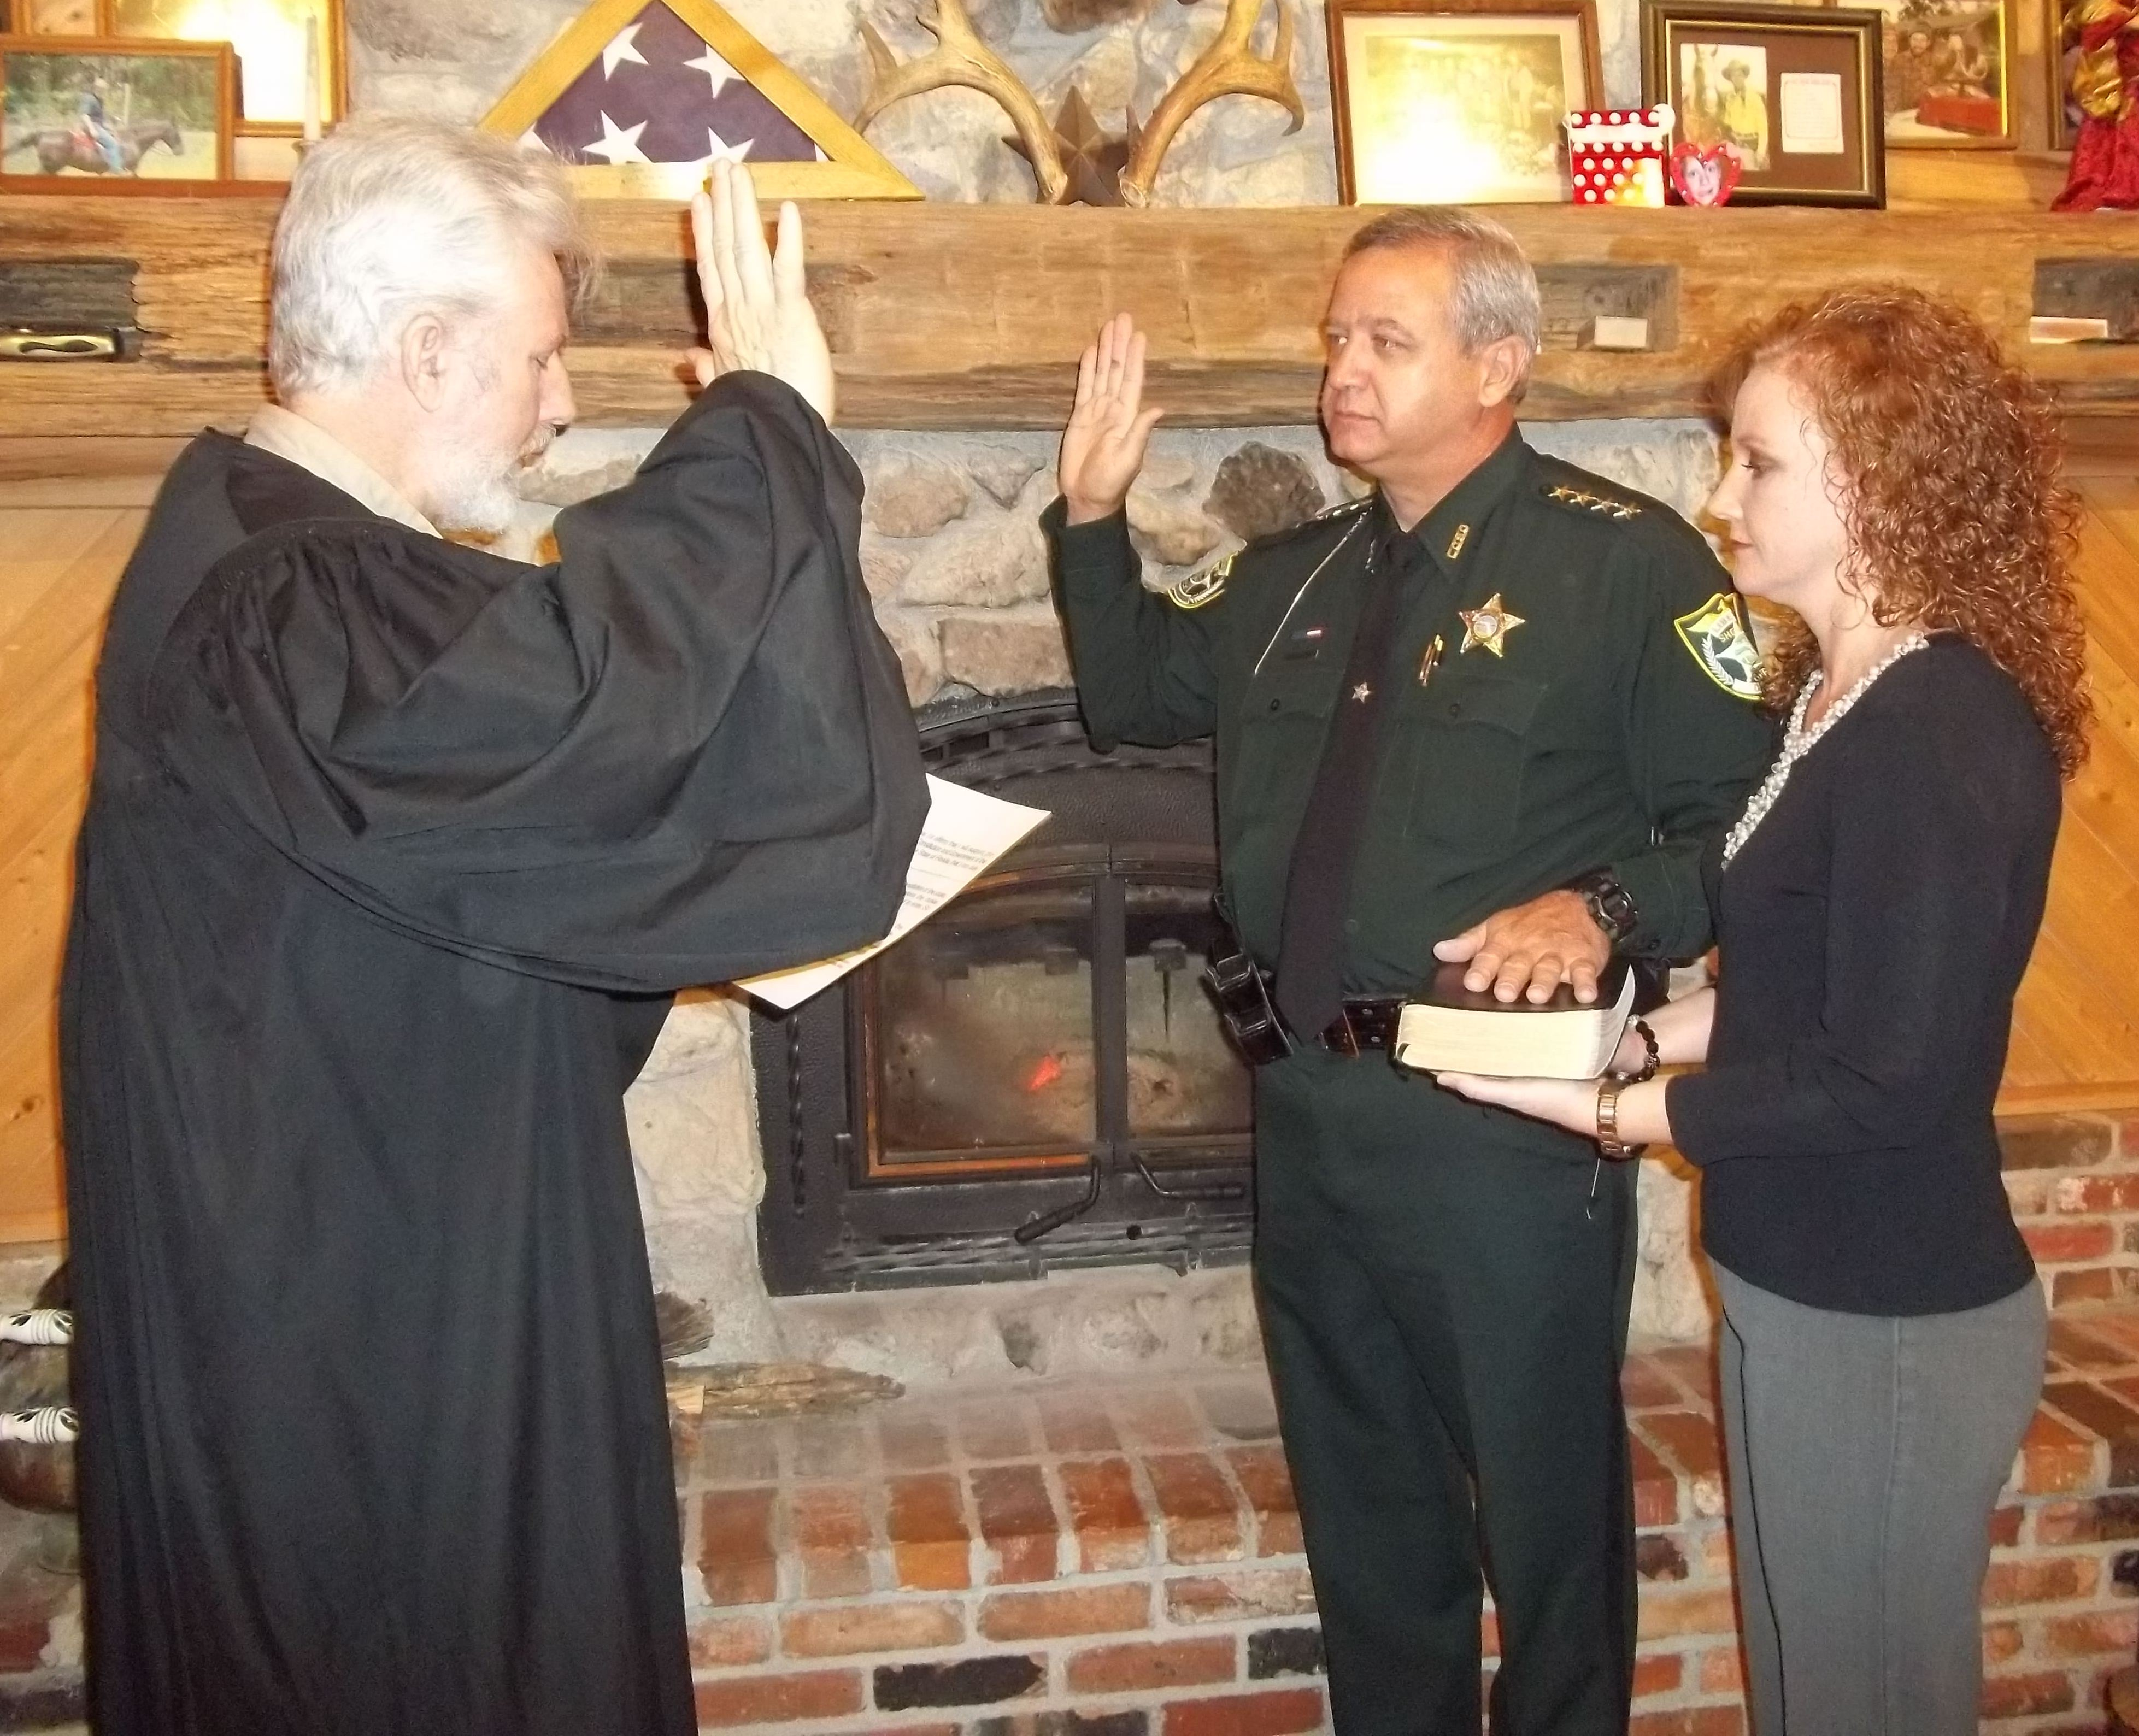 Nick Finch sworn in as Liberty County Sheriff